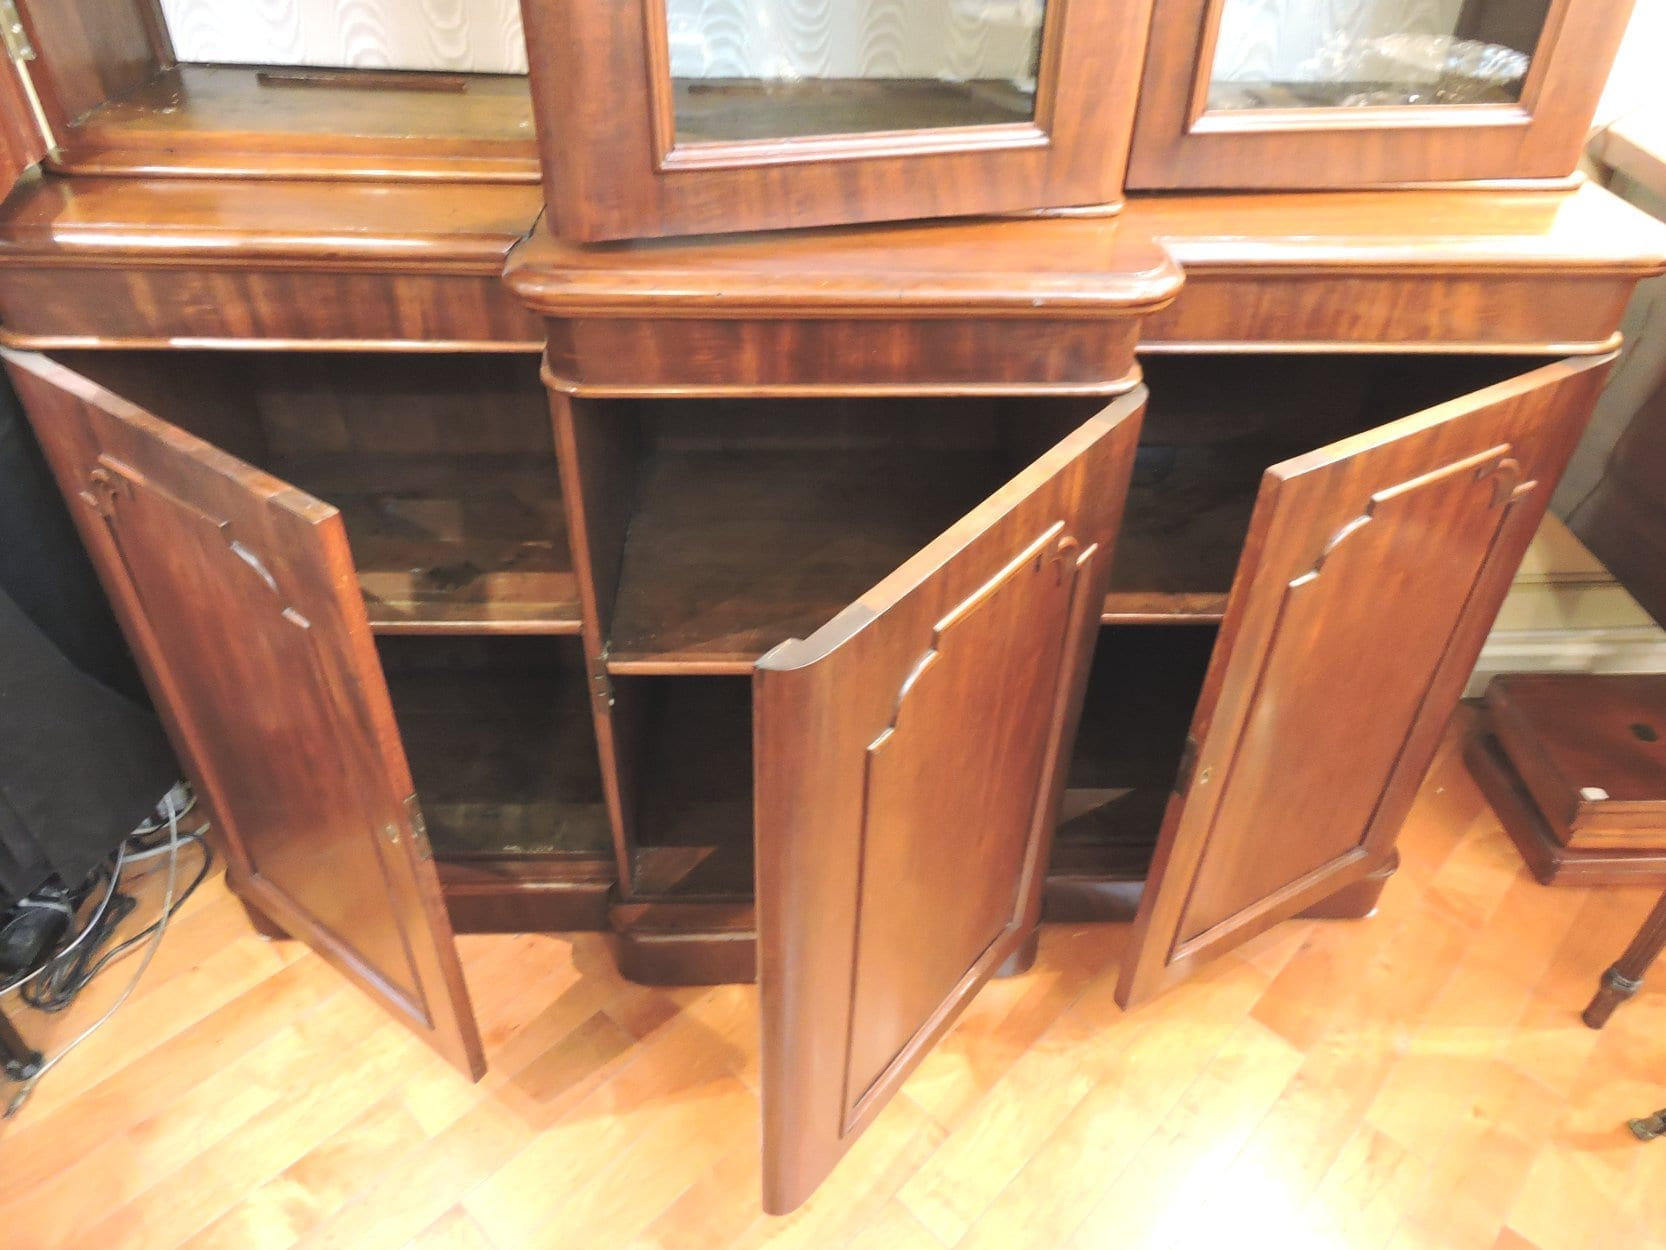 furniture - earlywmIVcabinet-08.jpg